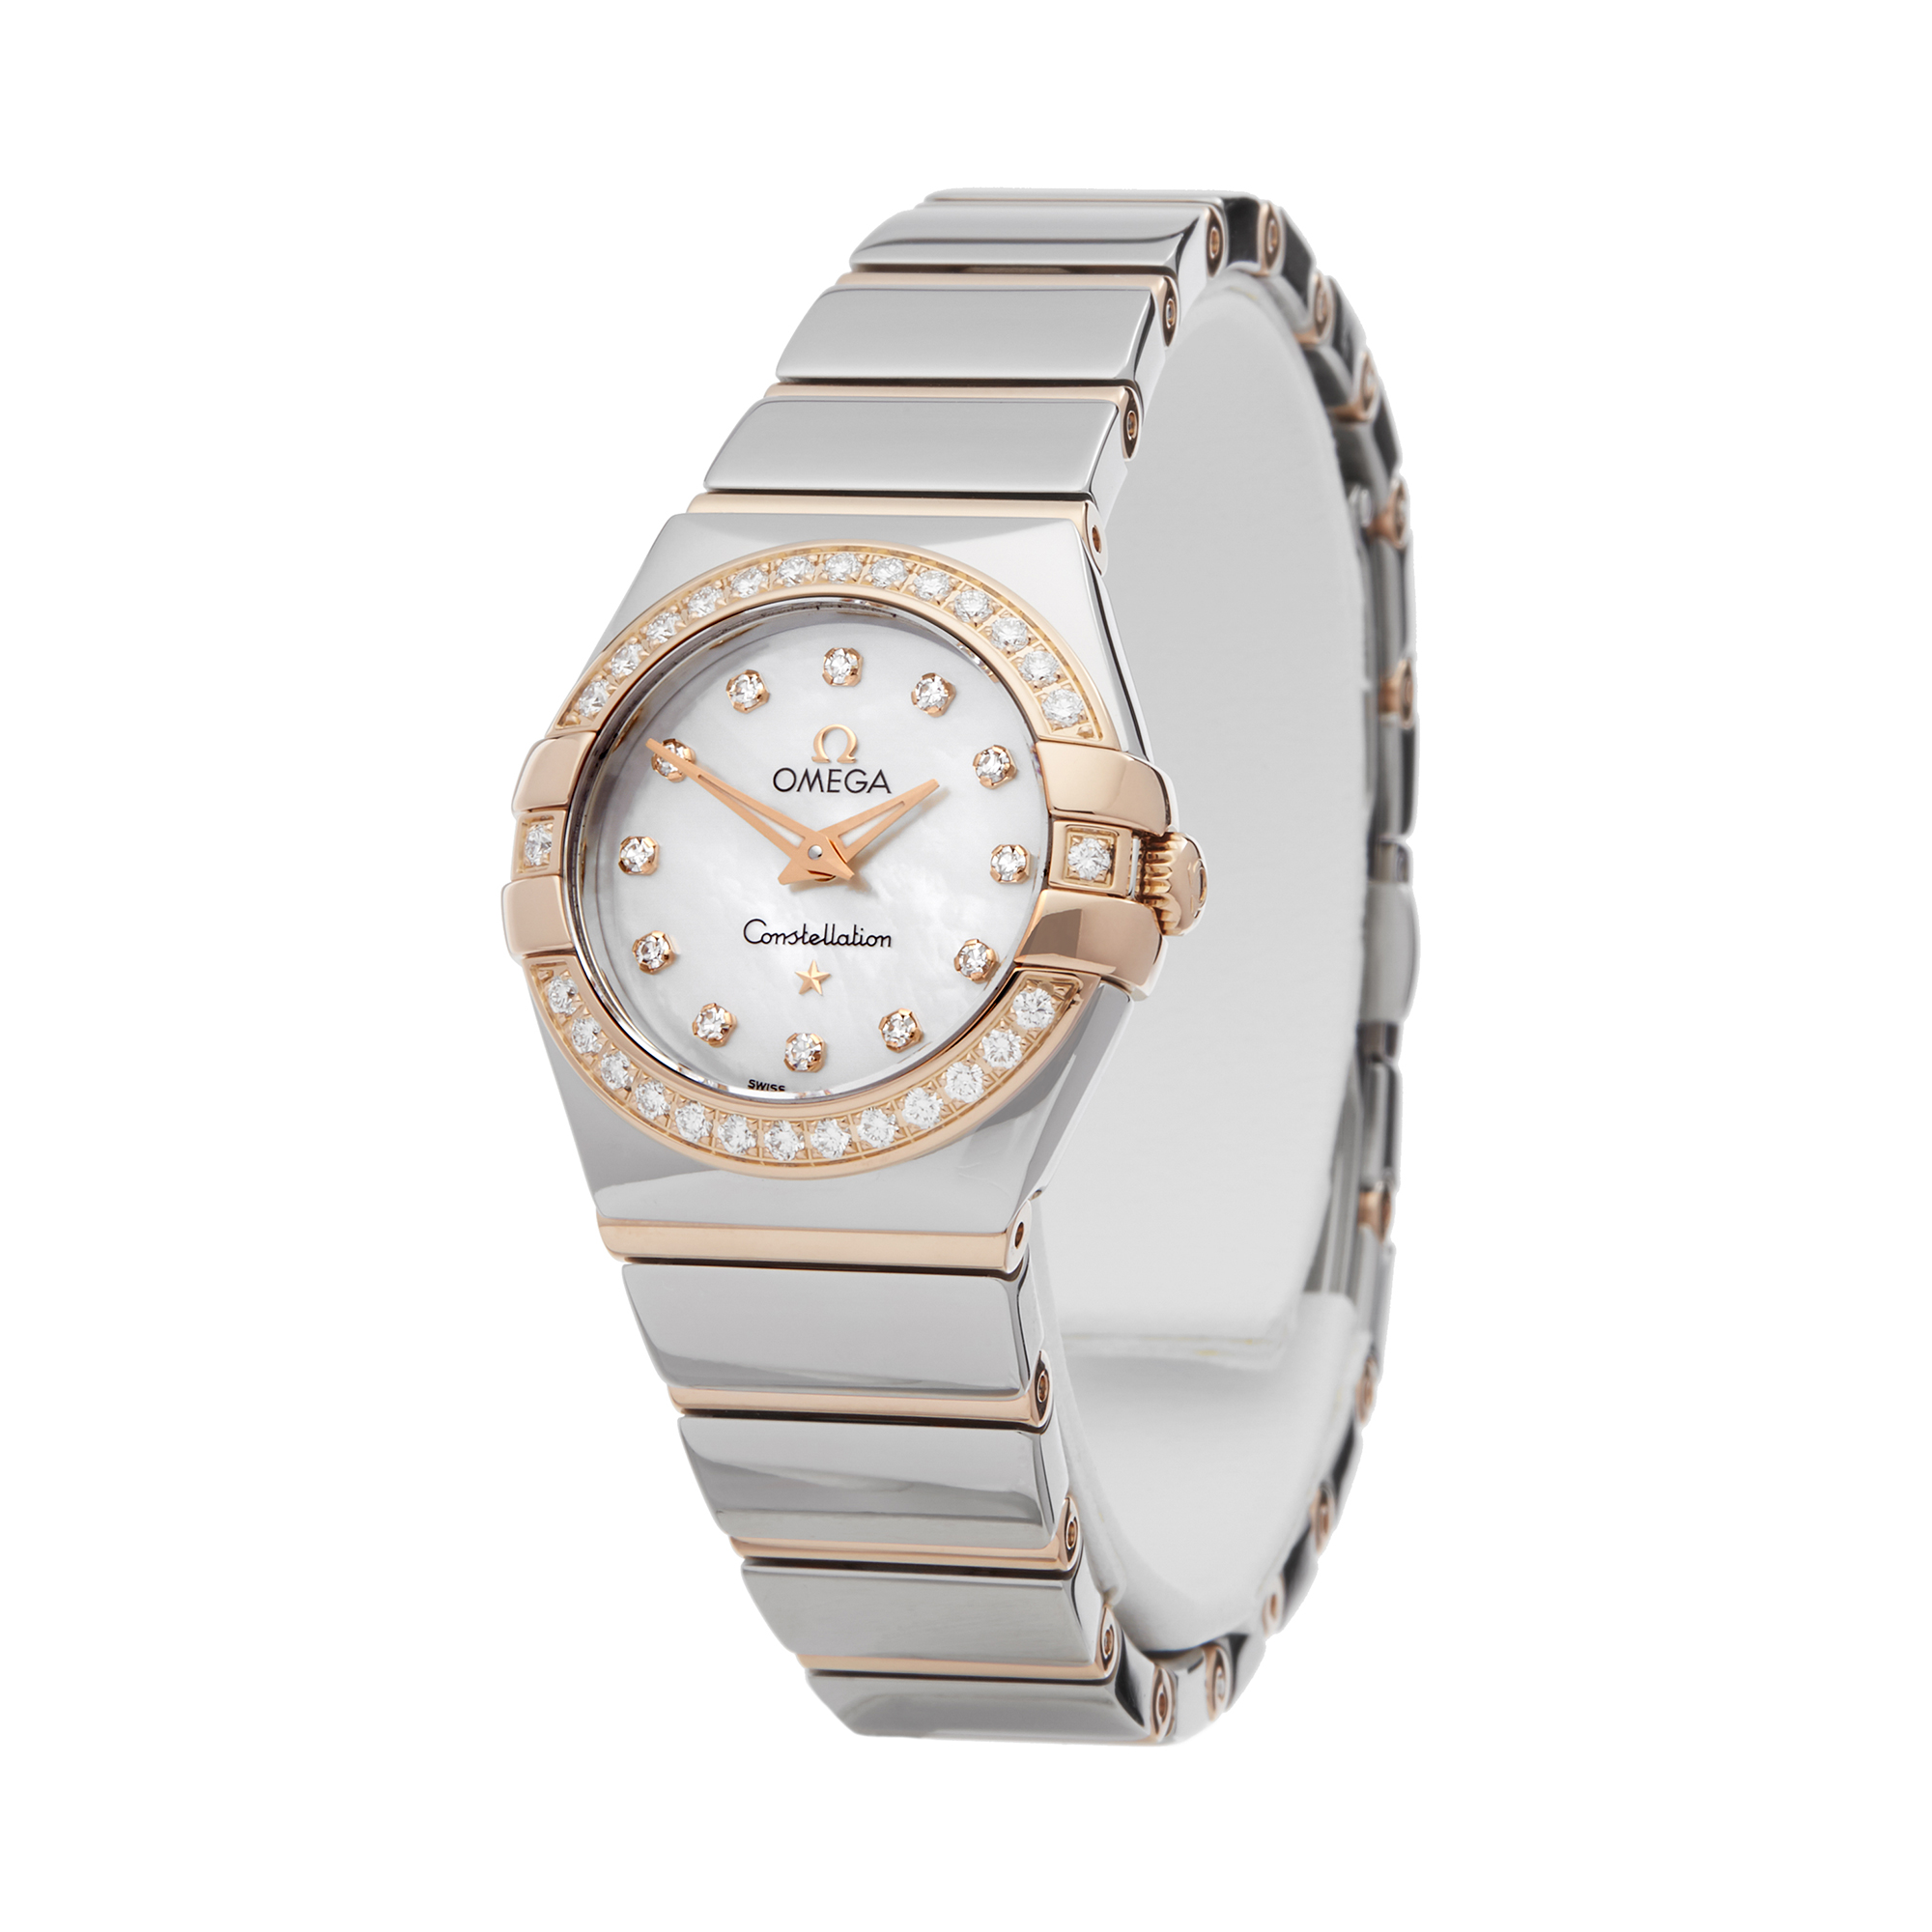 Omega Constellation 0 123.25.24.60.55.005 Ladies Stainless Steel & Rose Gold Diamond Mother Of Pearl